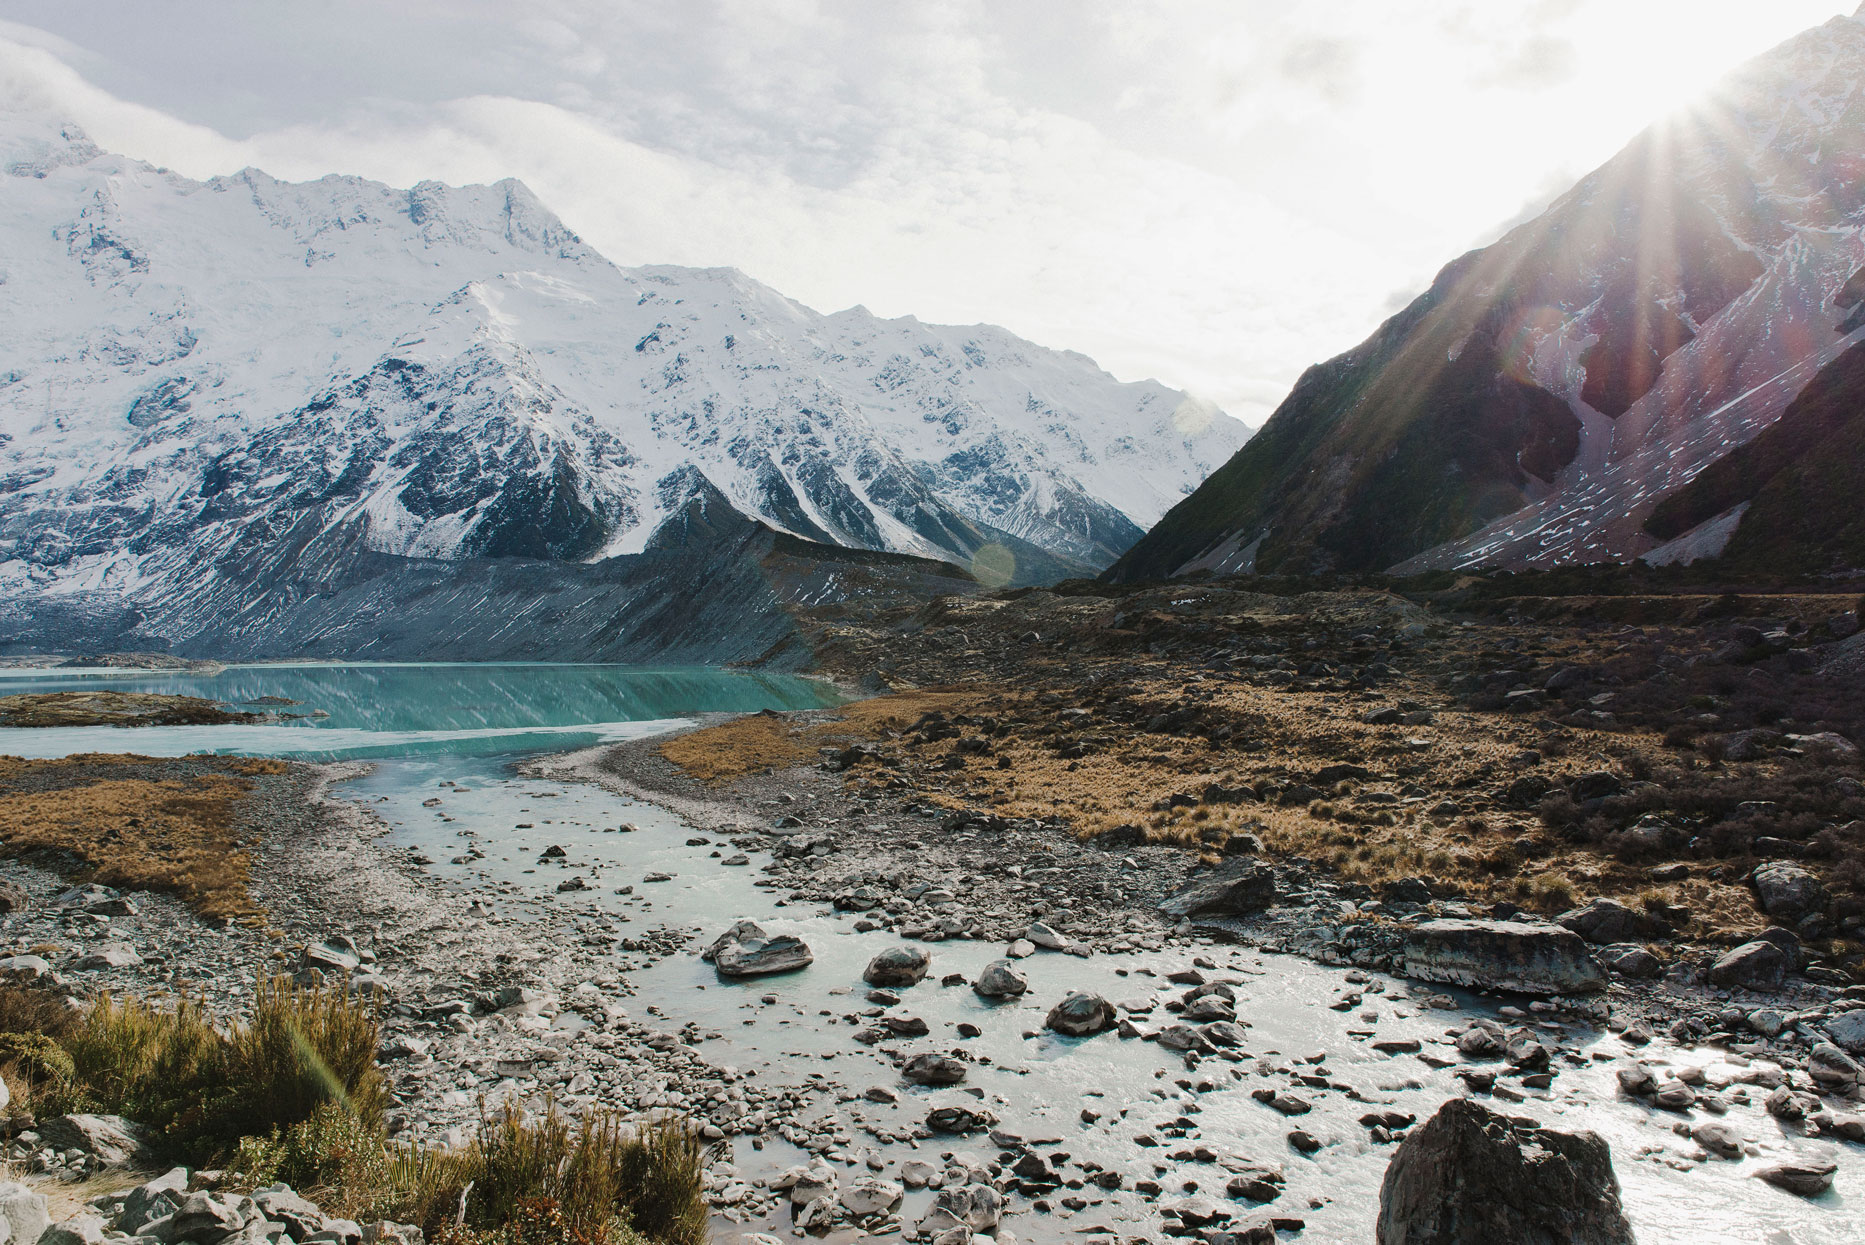 DSC_4150-MT-COOK-WEB.jpg